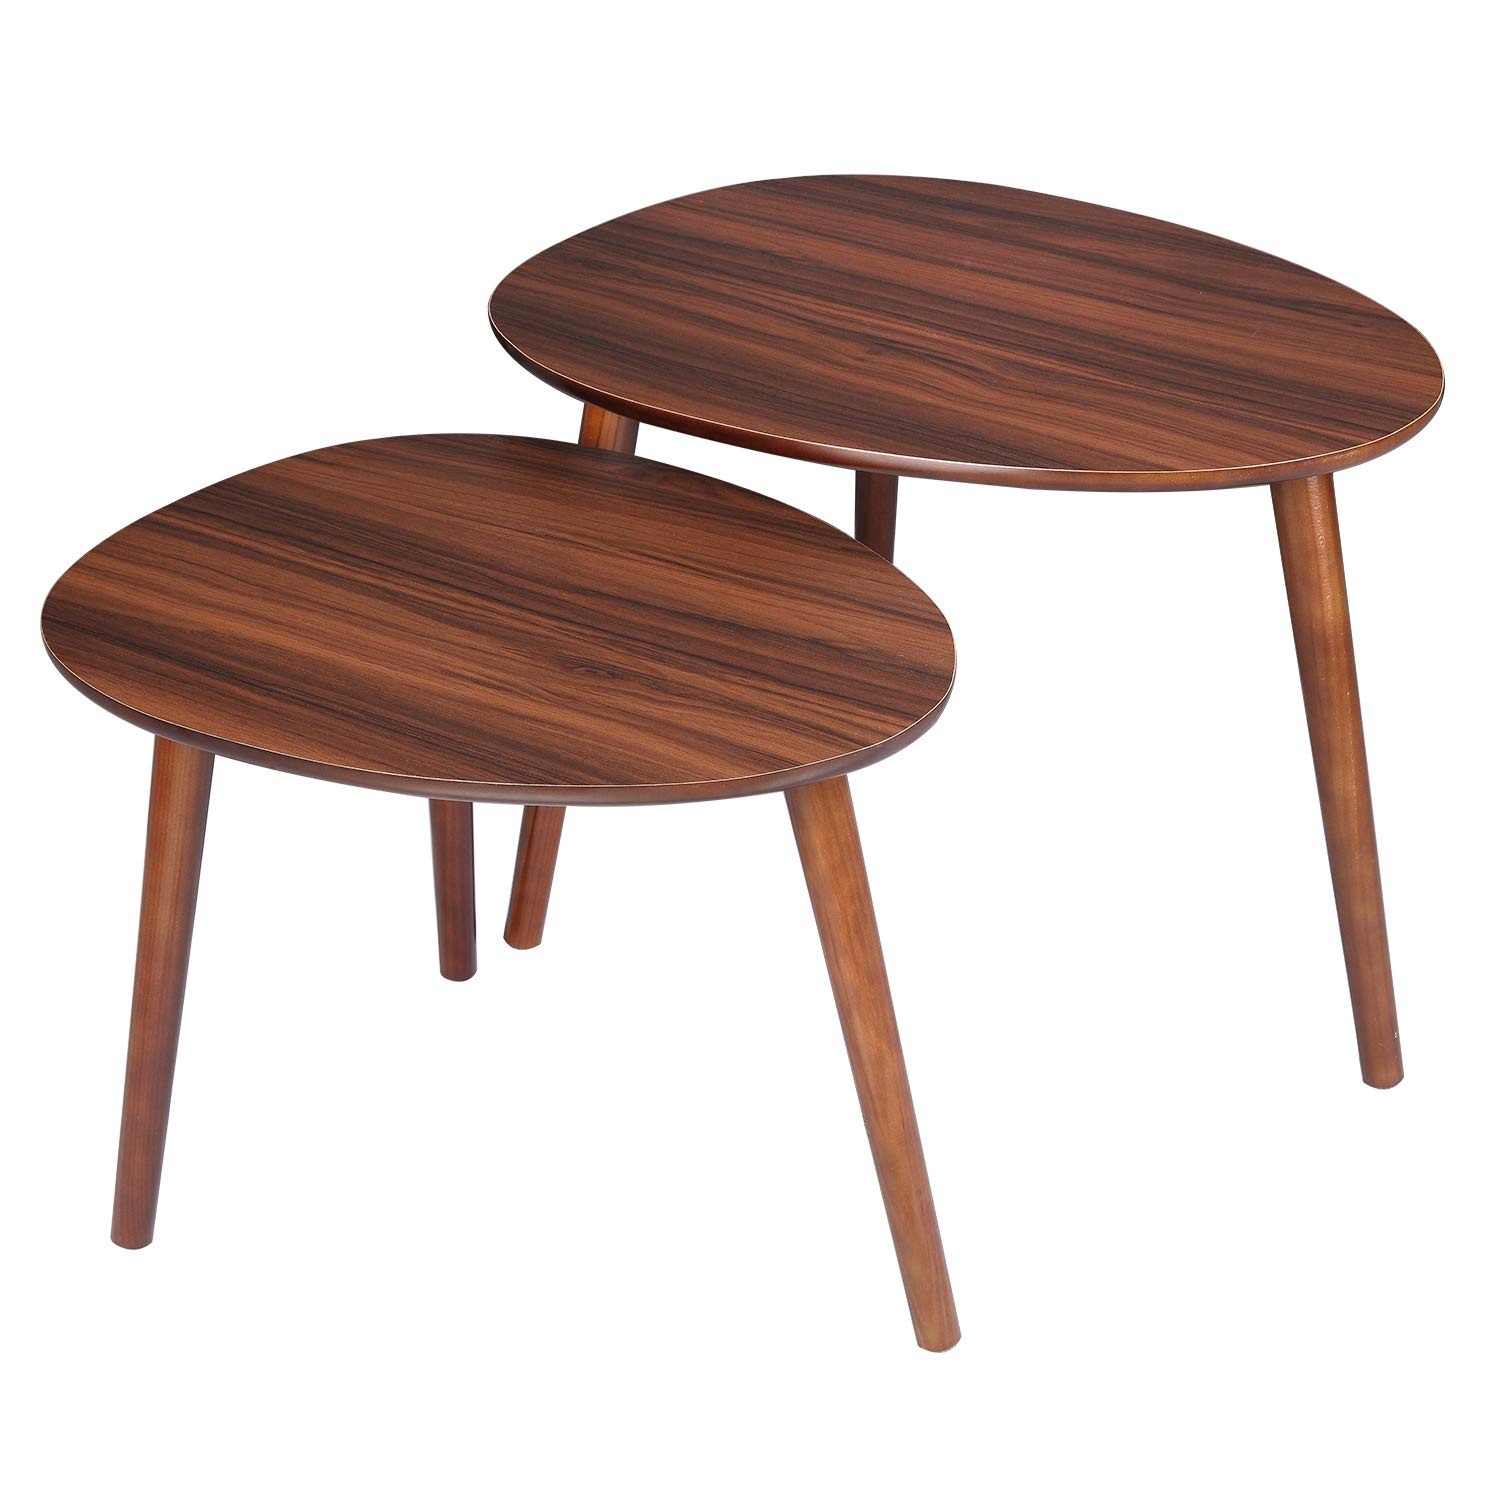 Bonnlo Nesting Tables Stacking Coffee/Side/End Tables for Living Room, Home and Office, Set of 2, Walnut by Bonnlo